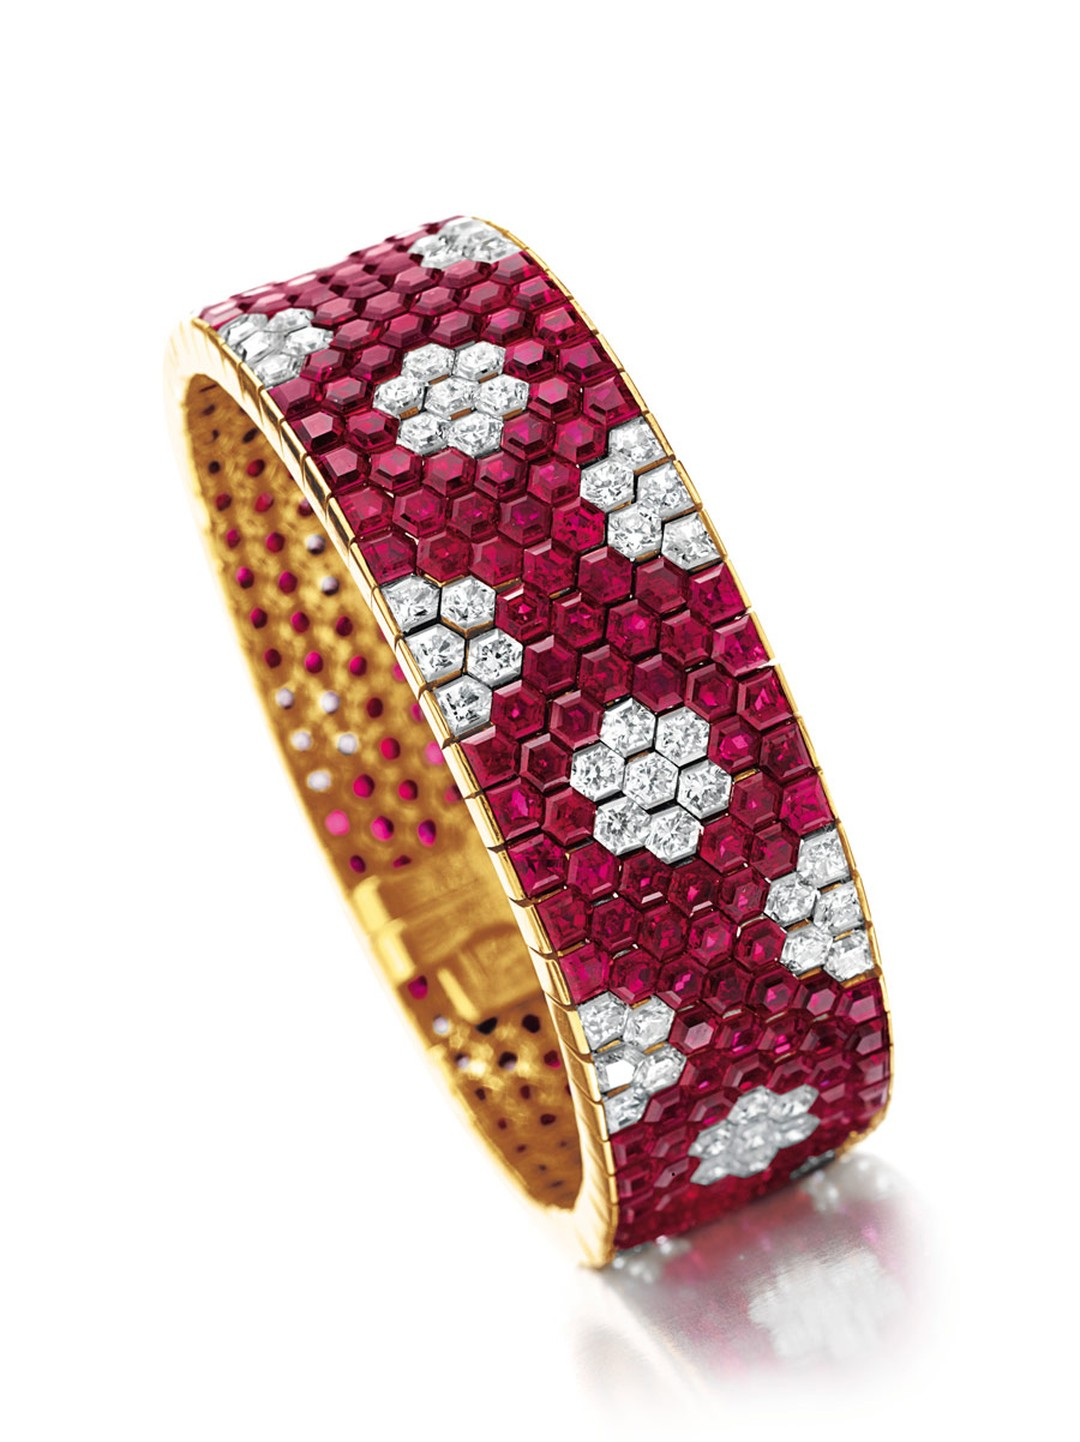 Christies-ruby-and-diamond-bracelet-by-Van-Cleef